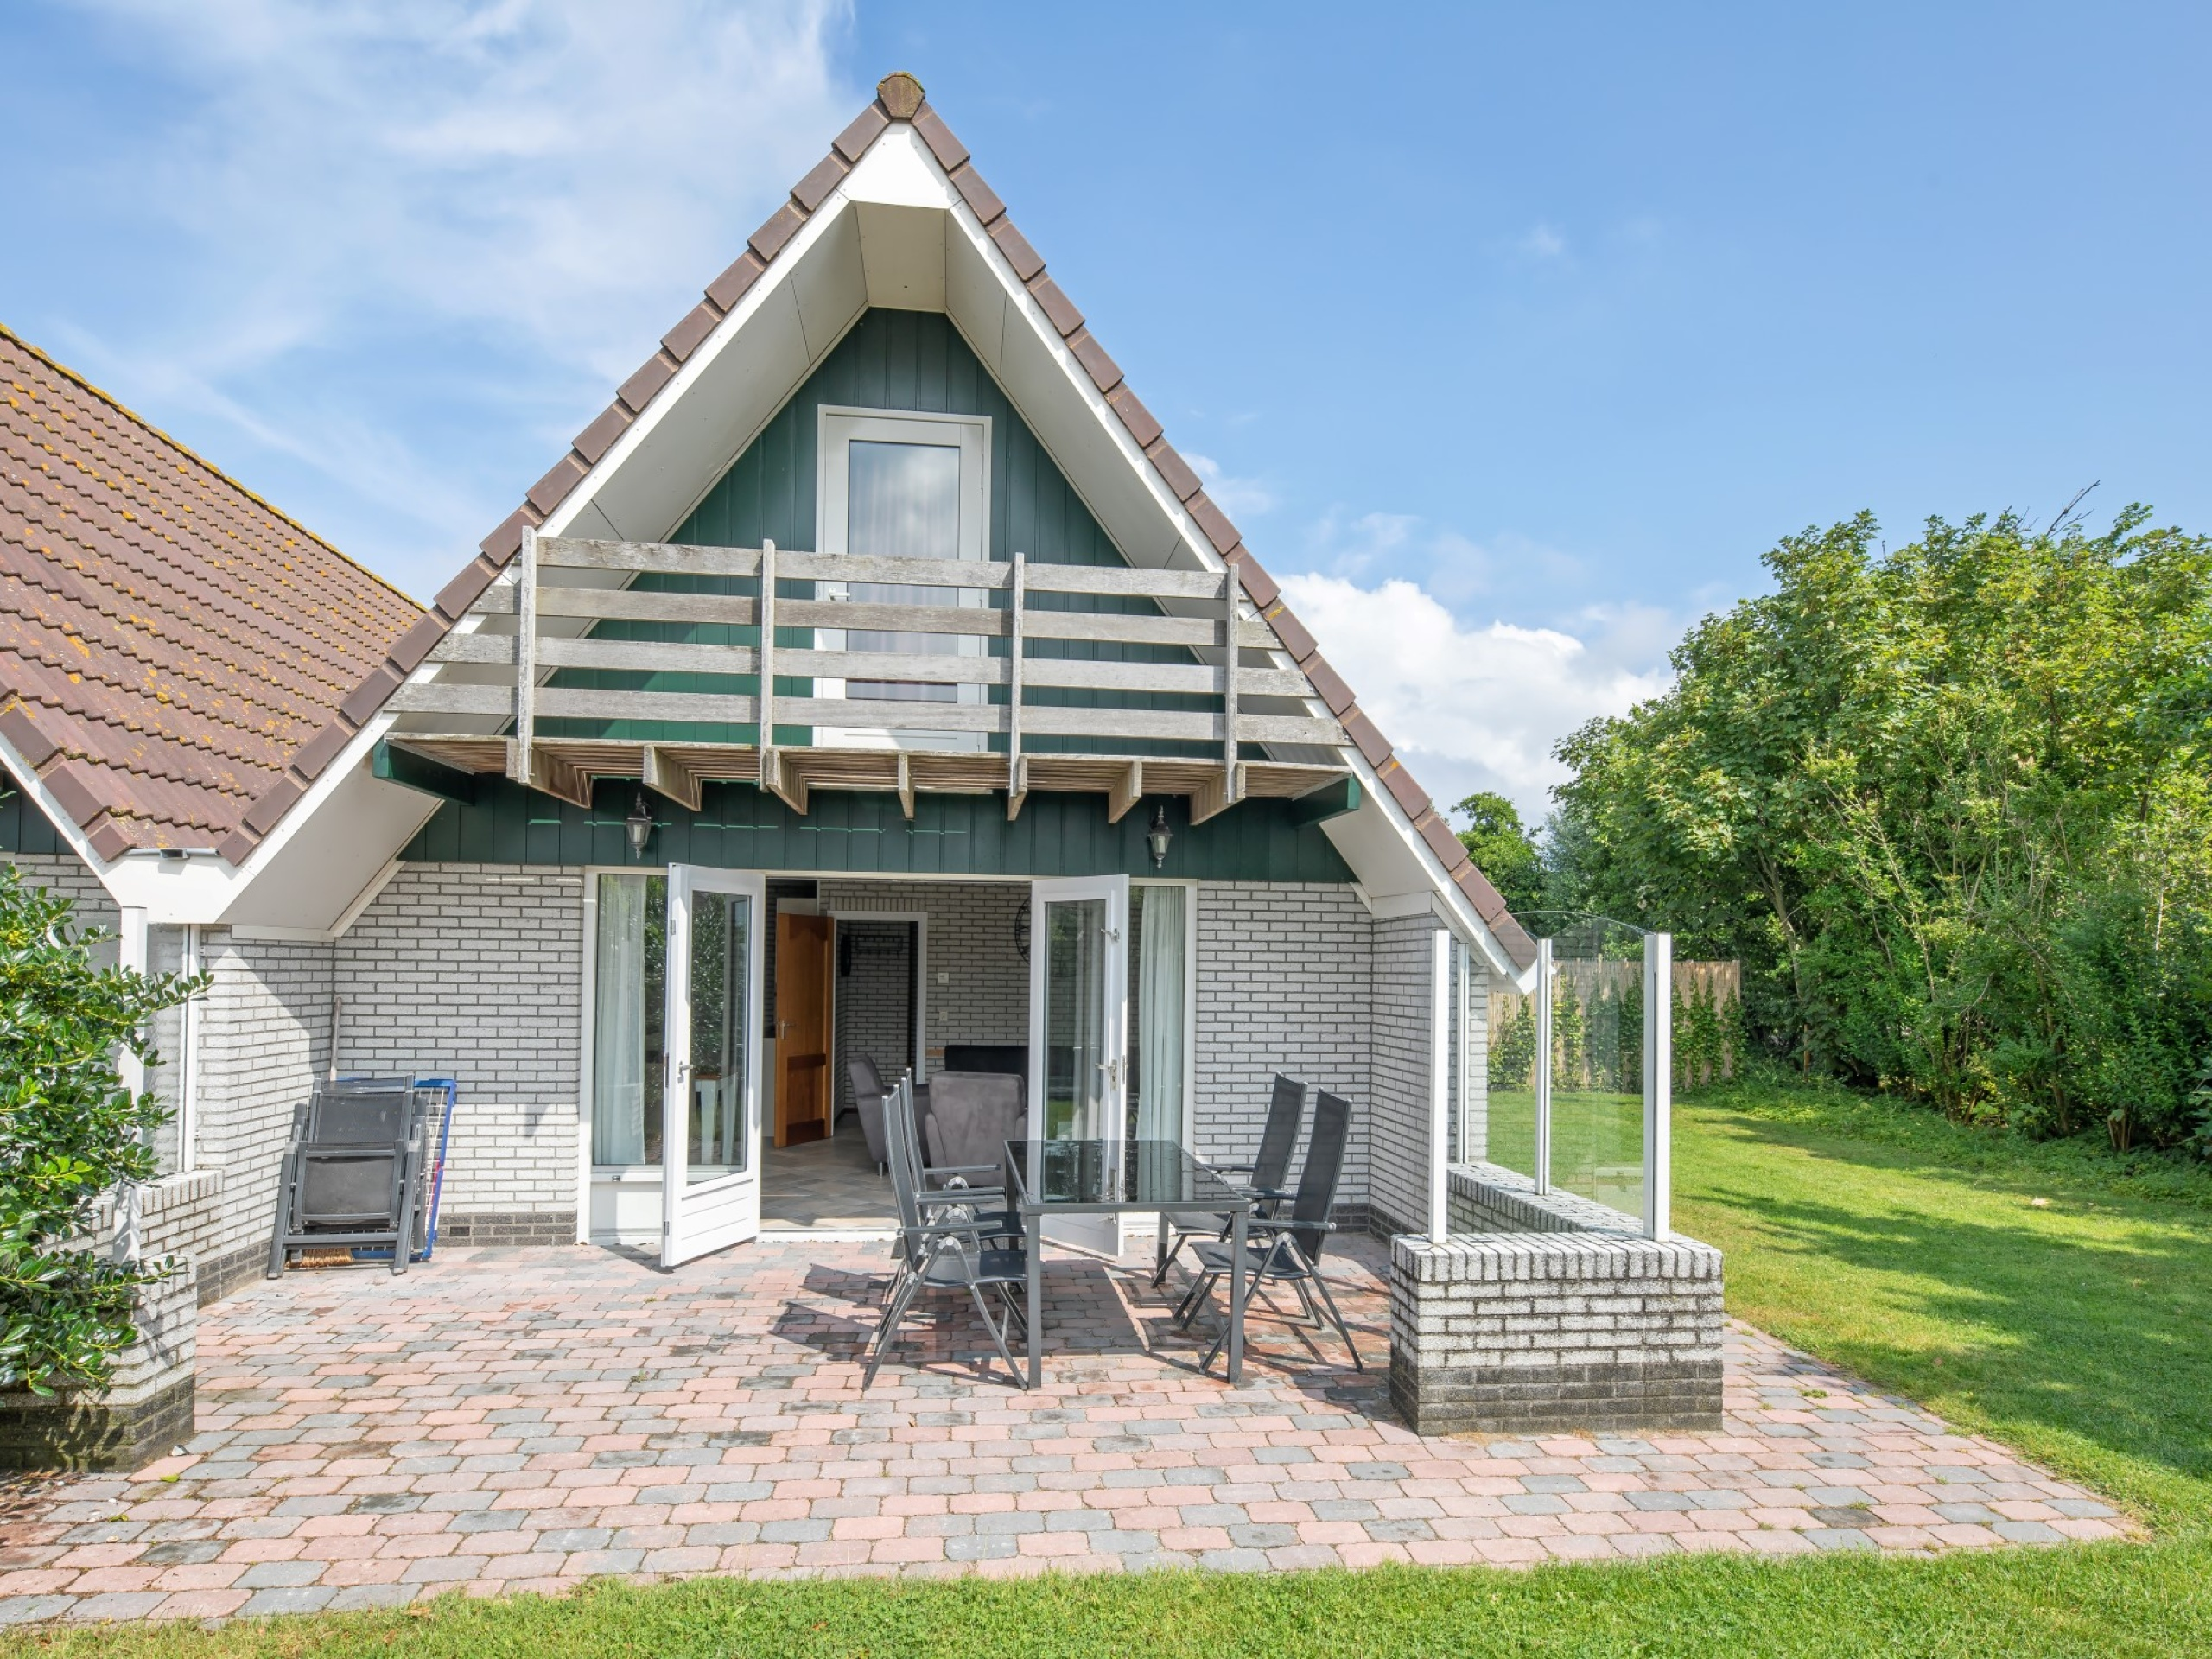 Semi-detached holiday home near De Cocksdorp and the lighthouse, 450 meters to the Wadden Sea beach